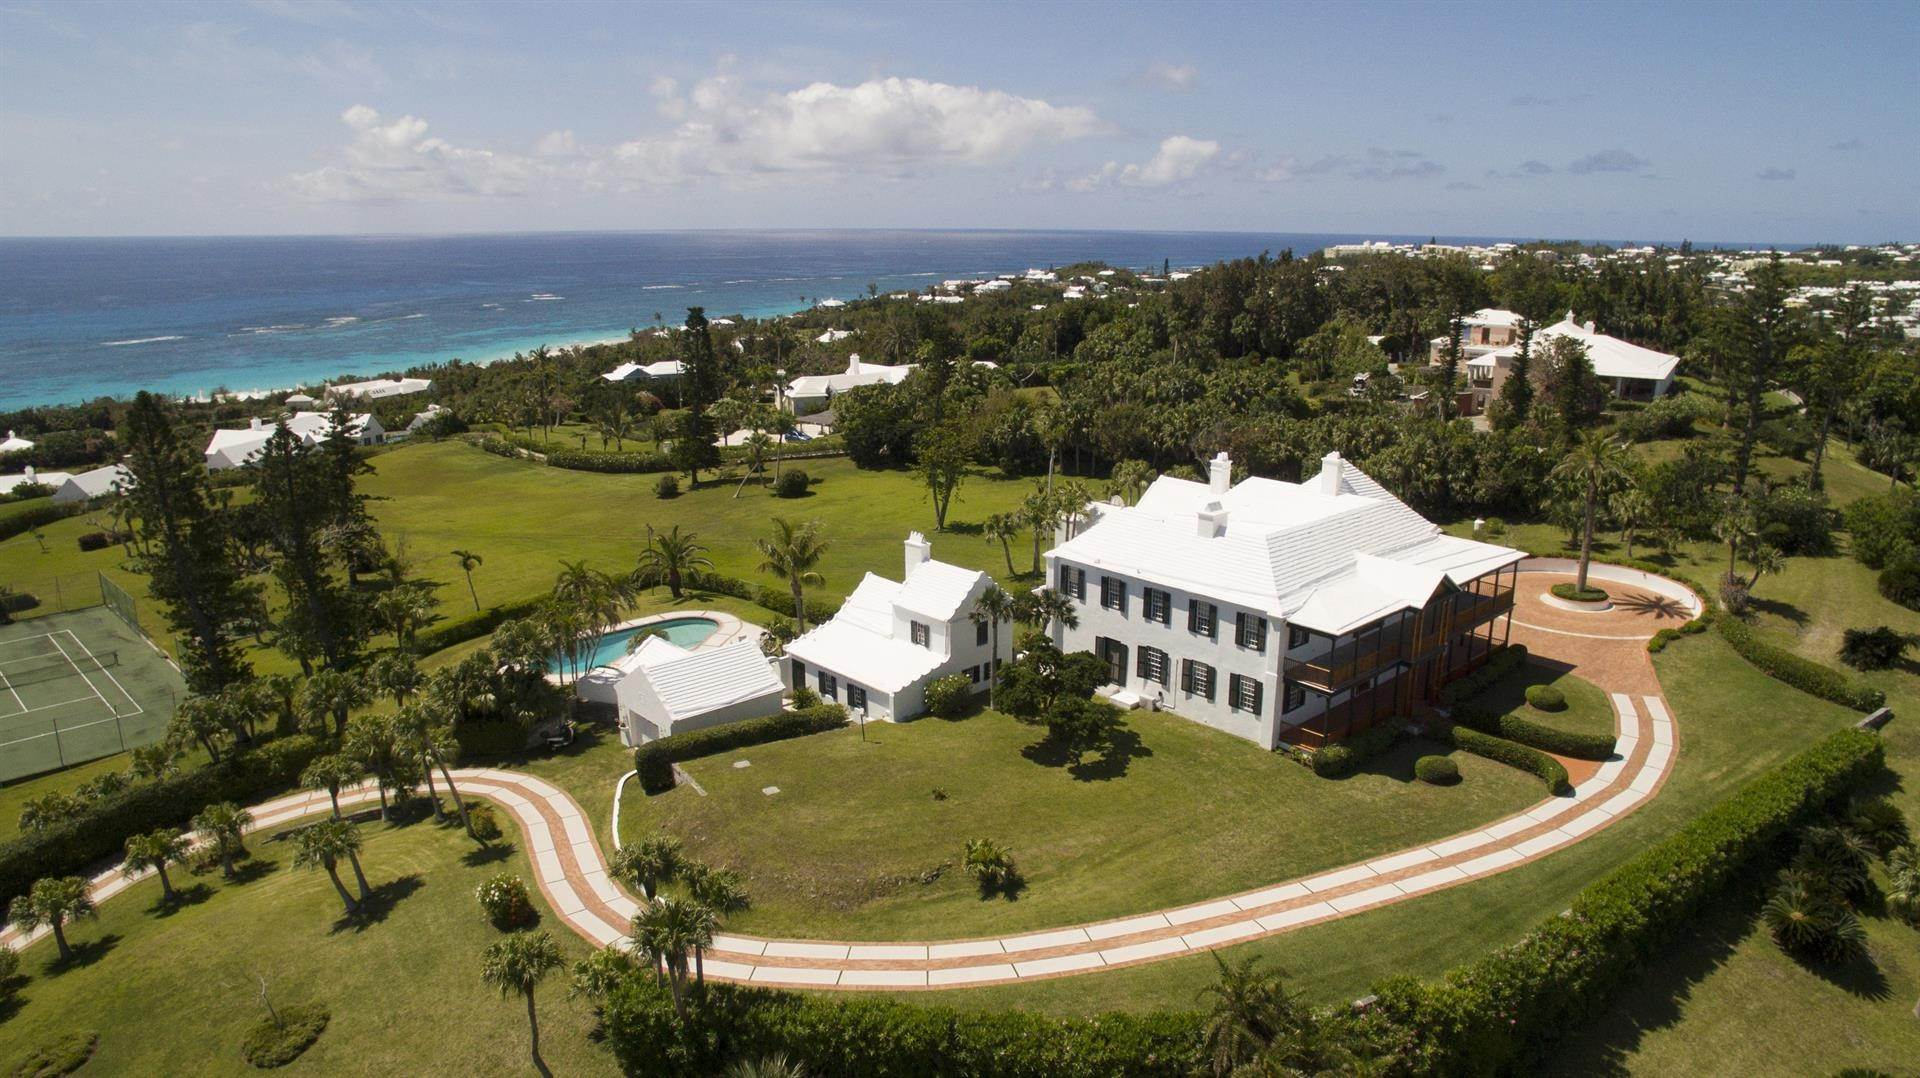 5. Residência para Venda às Bellevue Estate At Grape Bay Beach Bellevue Estate At Grape Bay Beach, 6 Bellevue Drive,Bermuda – Sinclair Realty